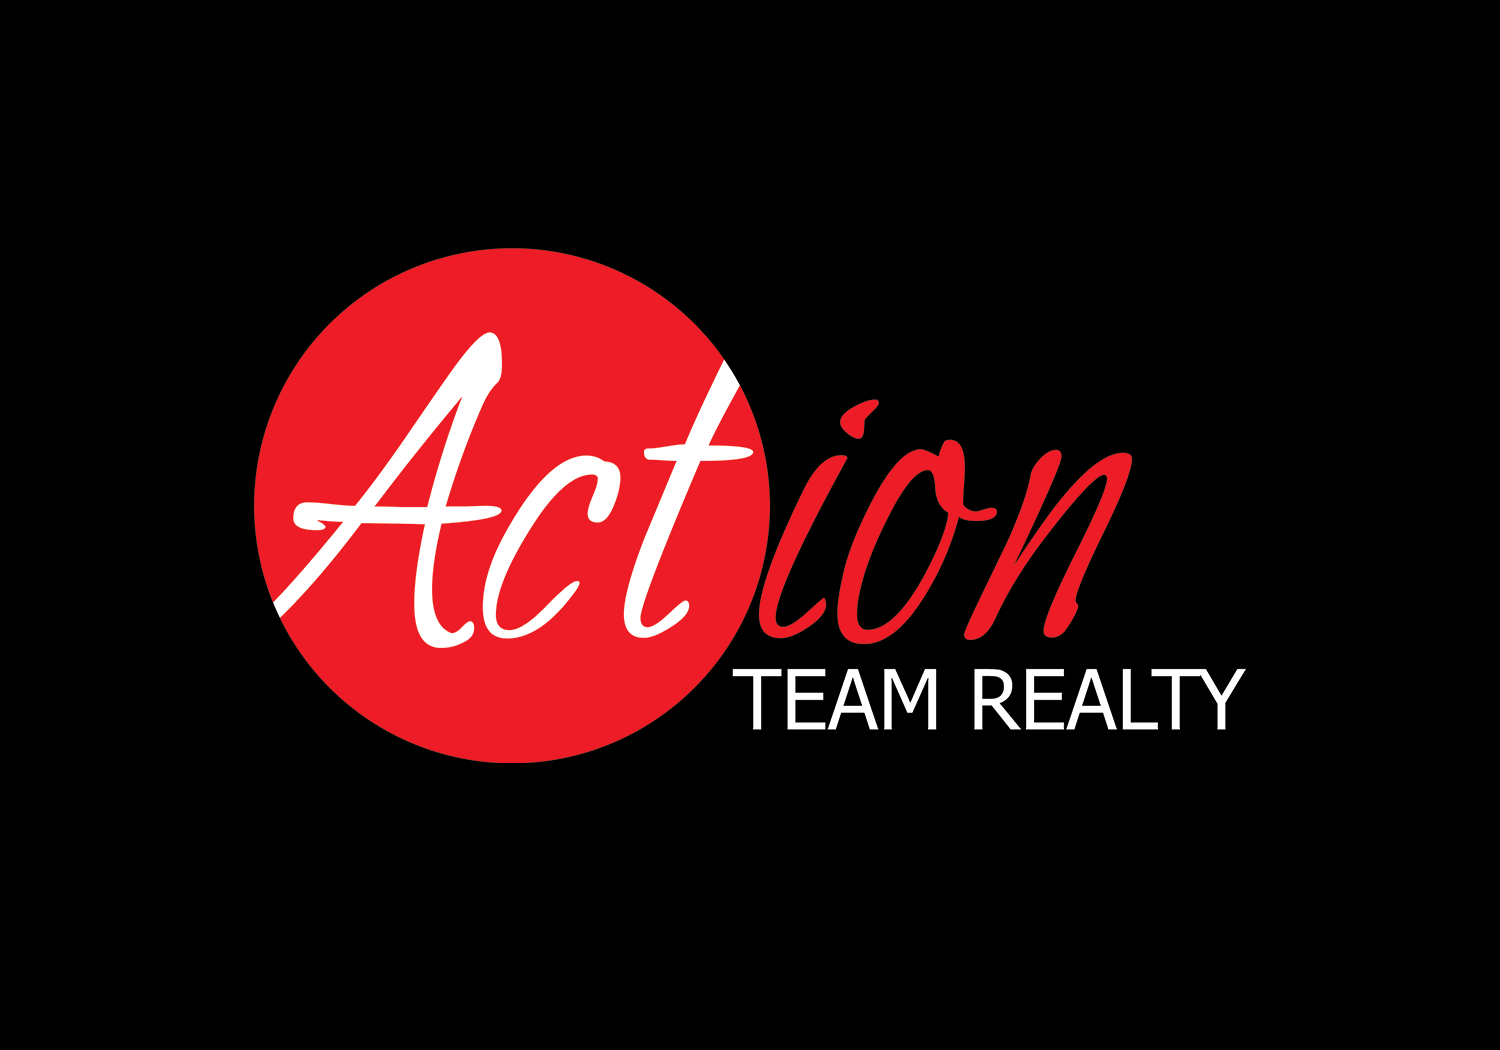 THE TOP 5 REASONS TO HIRE A REAL ESTATE AGENT